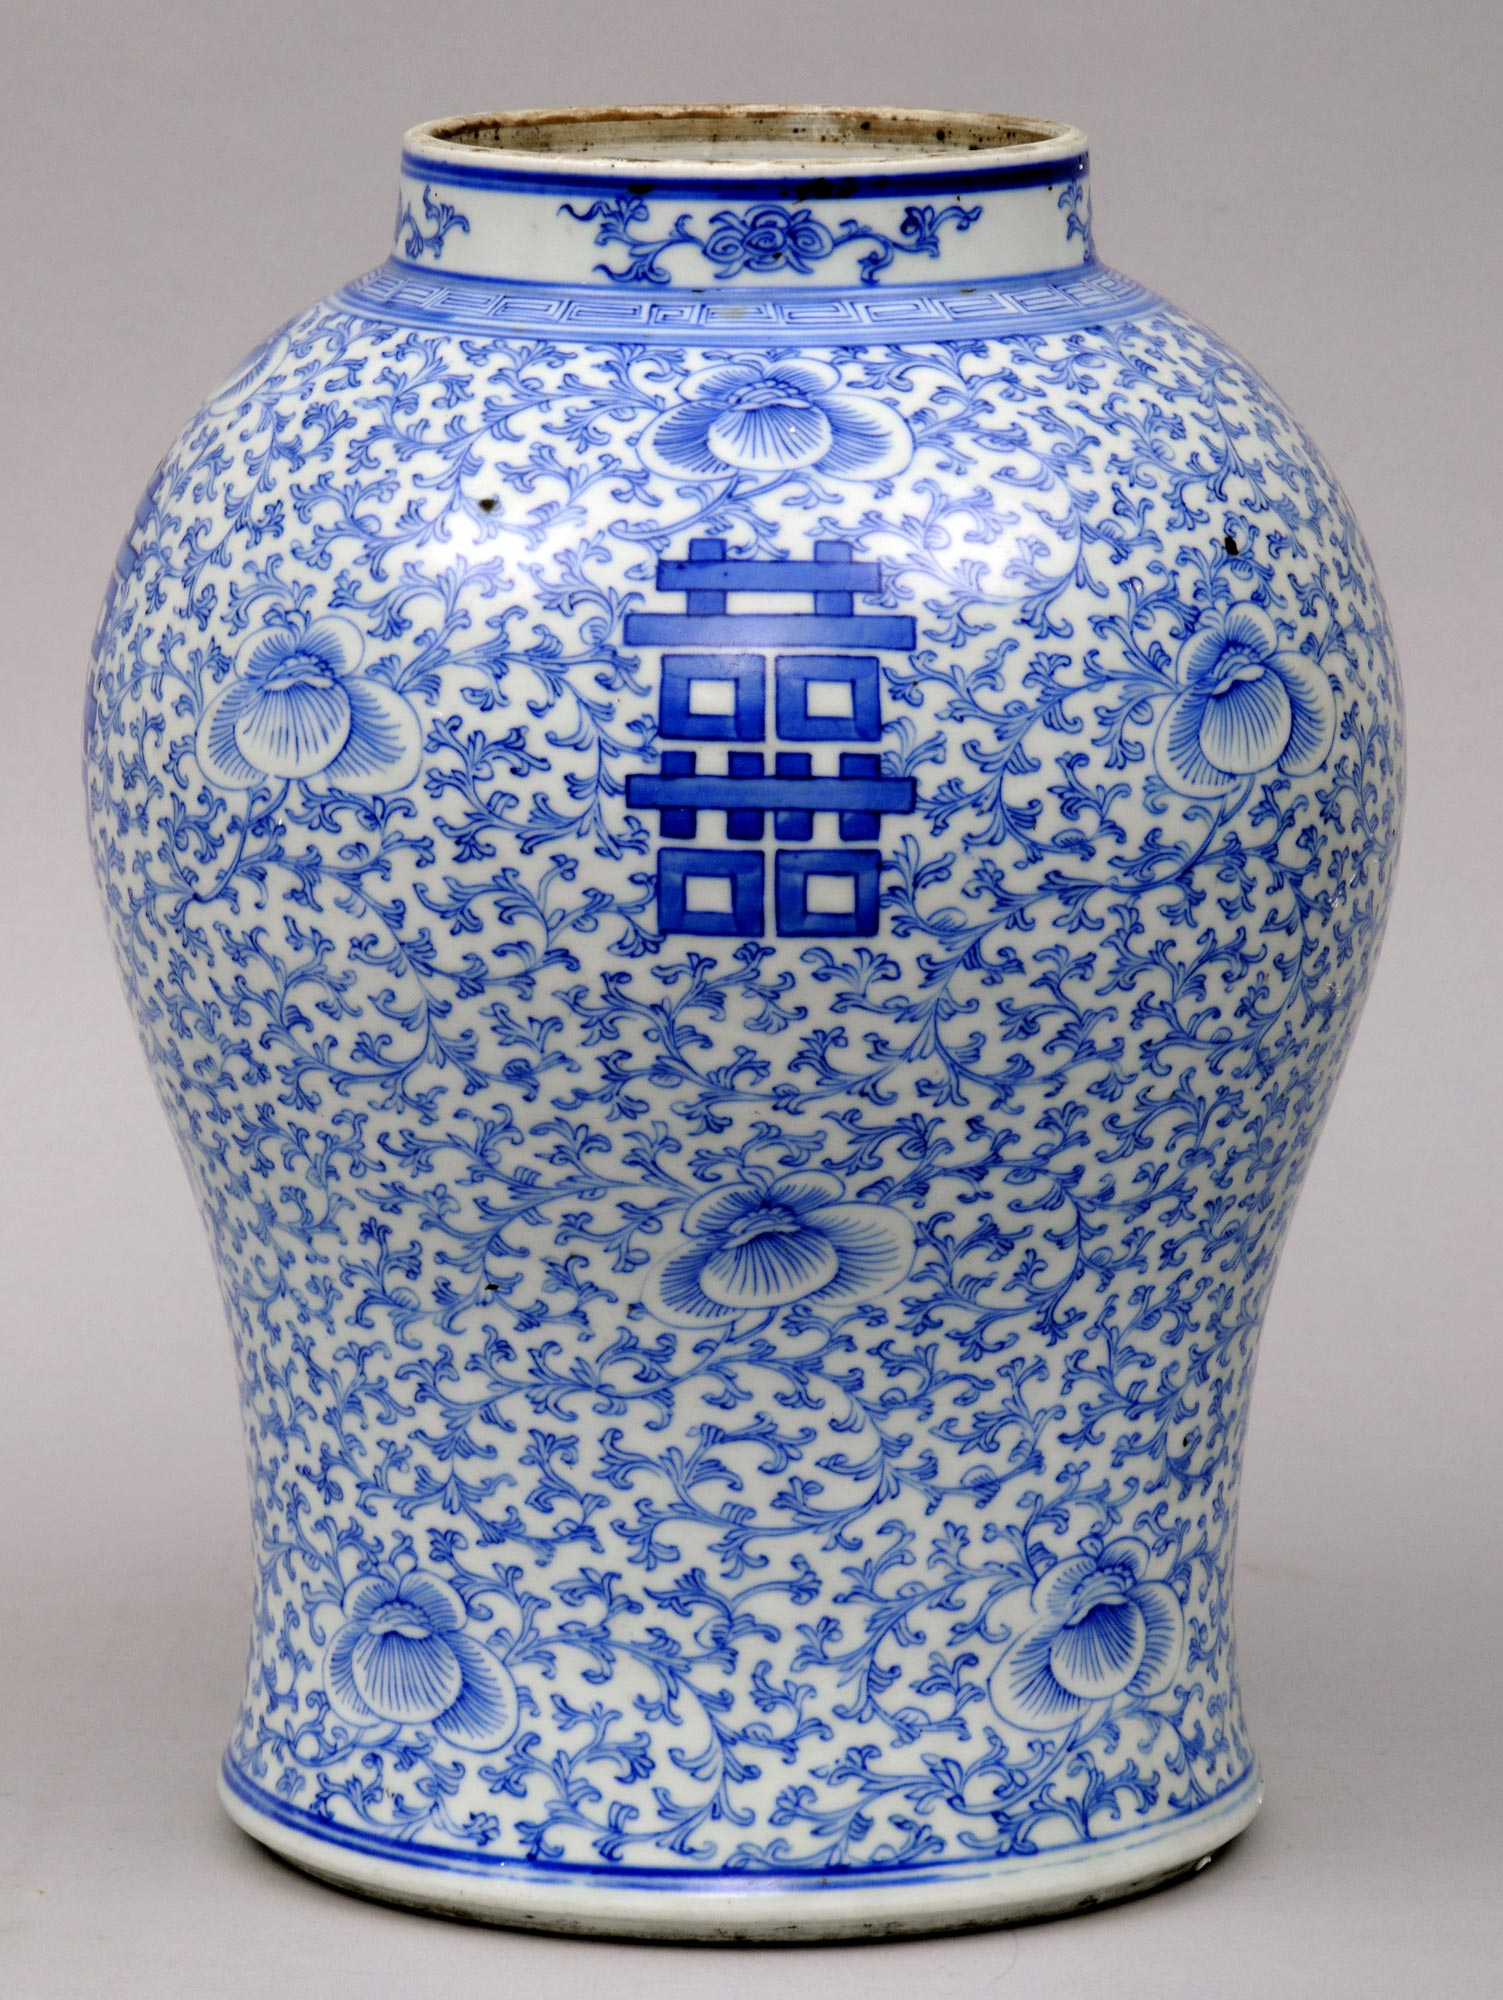 Antique Chinese Porcelain Lidded Vase Circa 1800